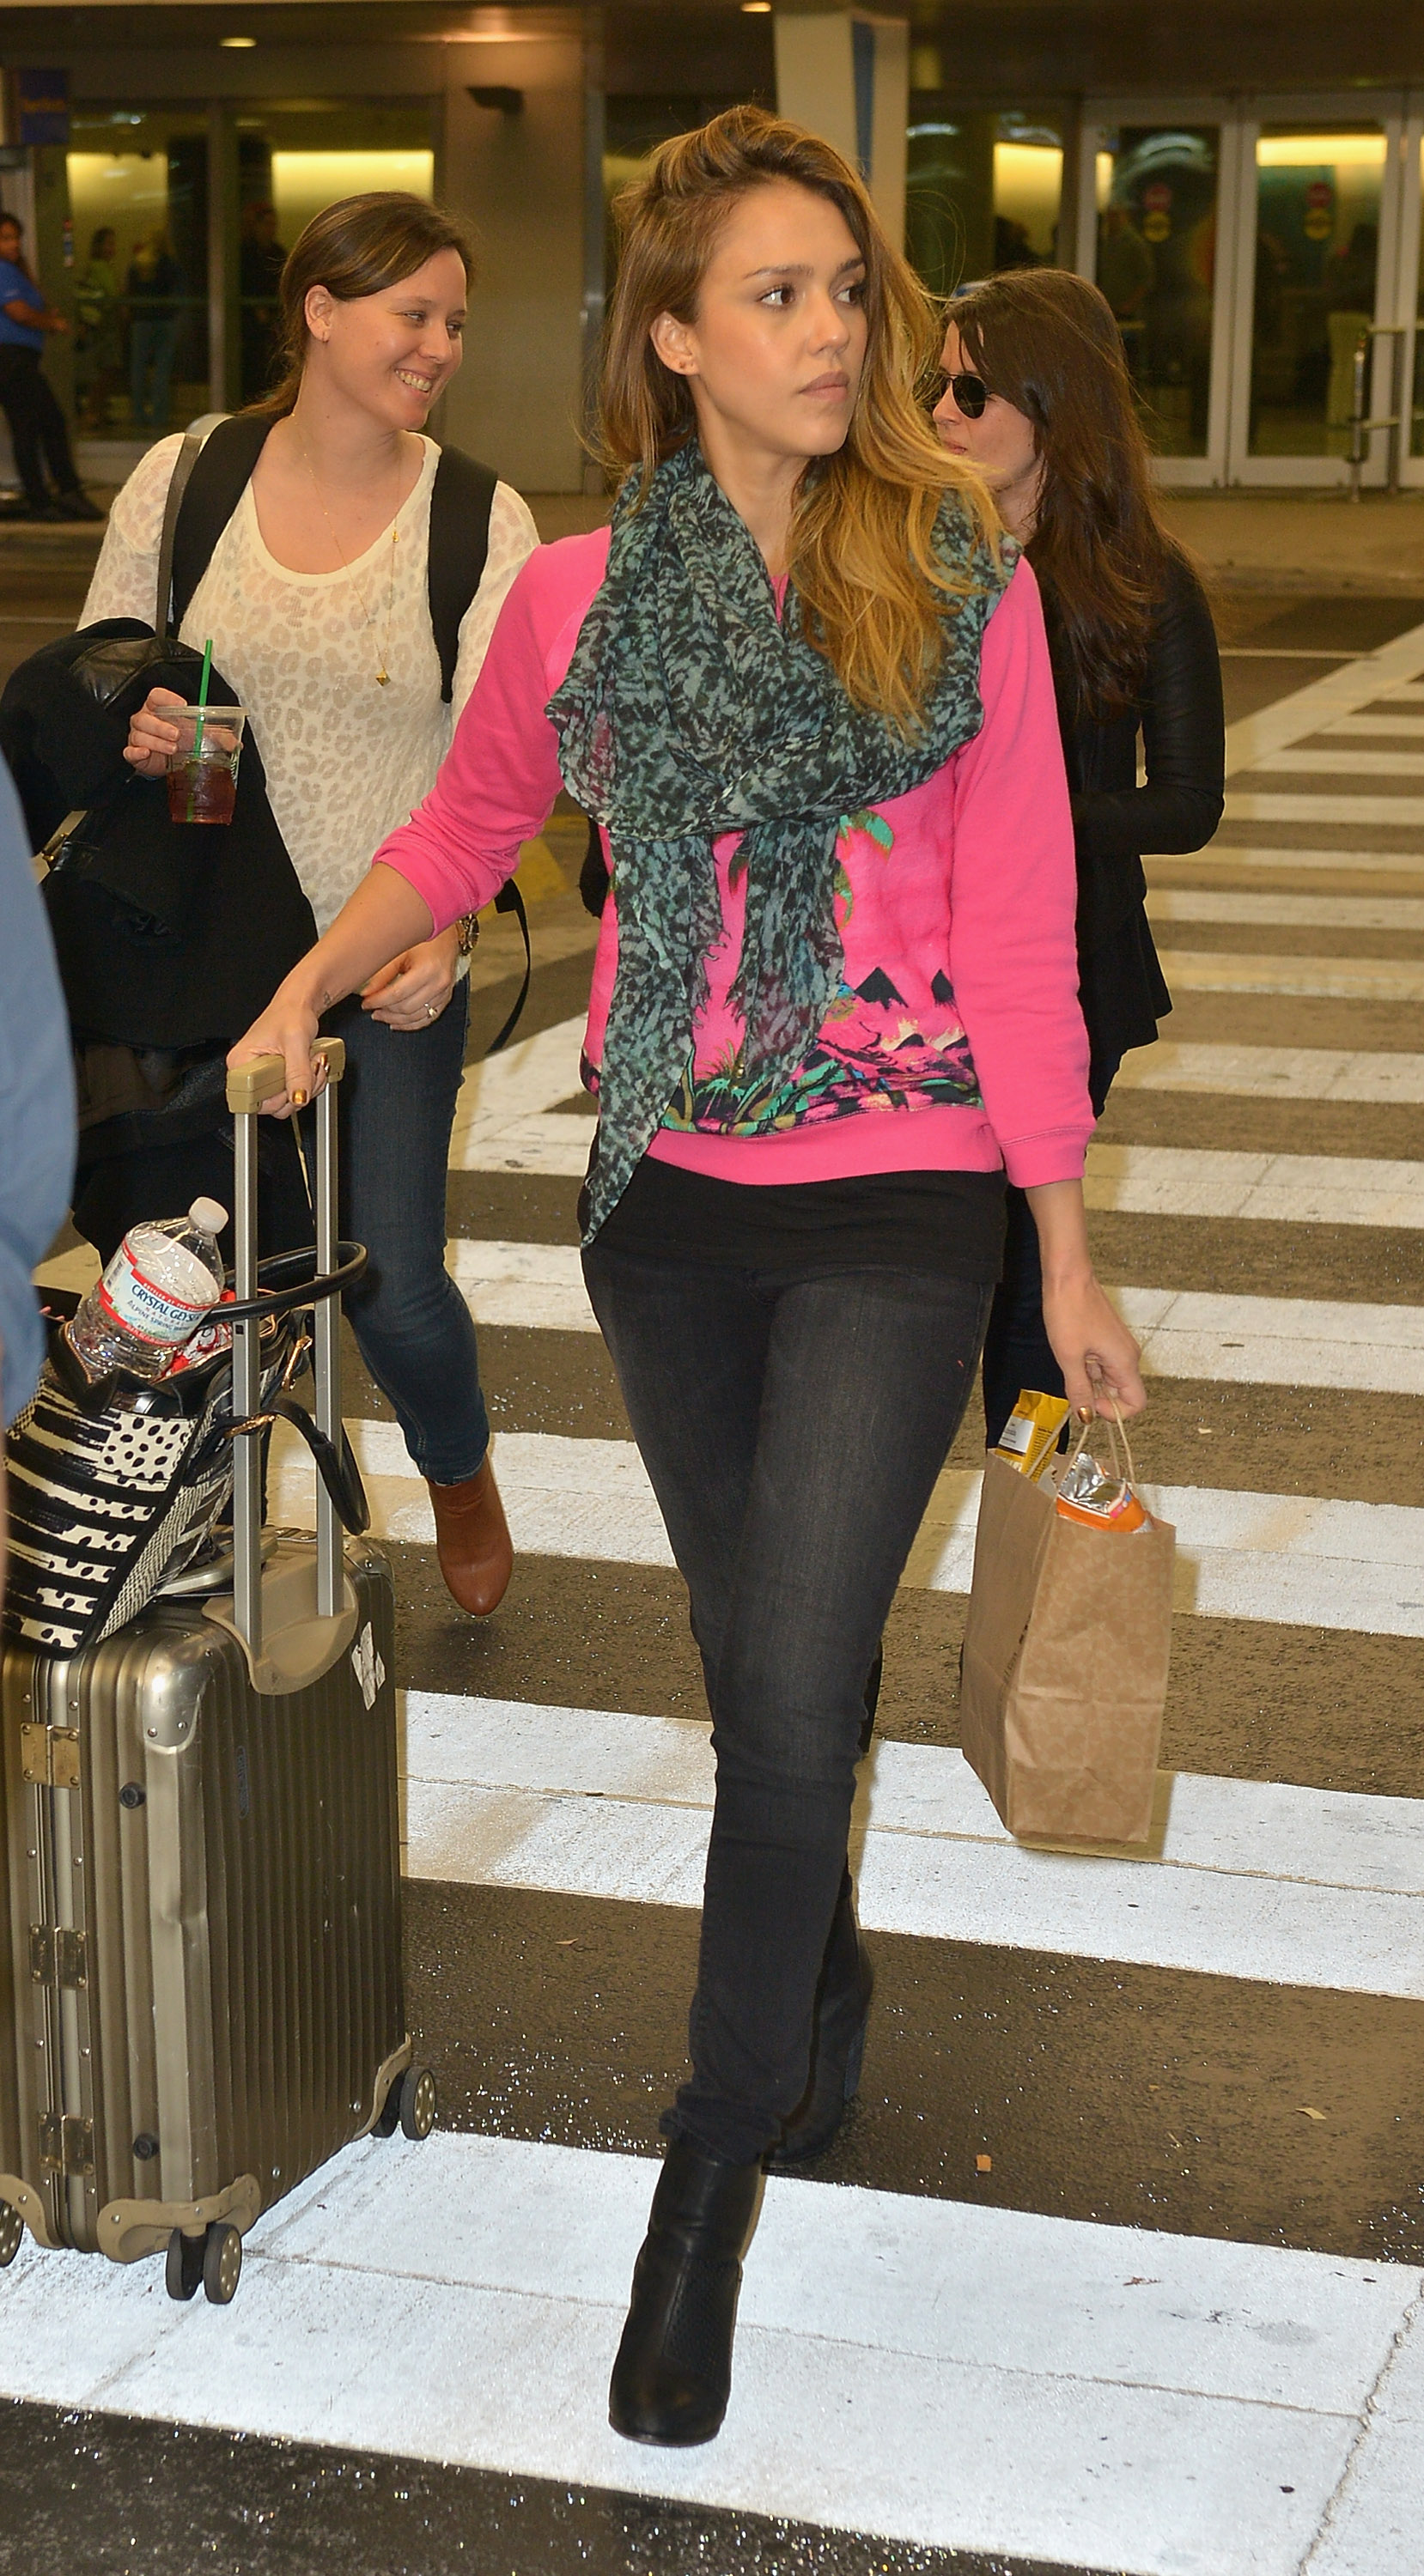 Airport Jetsetter Travel Flying Style Hot Pink Sweater Scarf Suitcase Jessica Alba Style